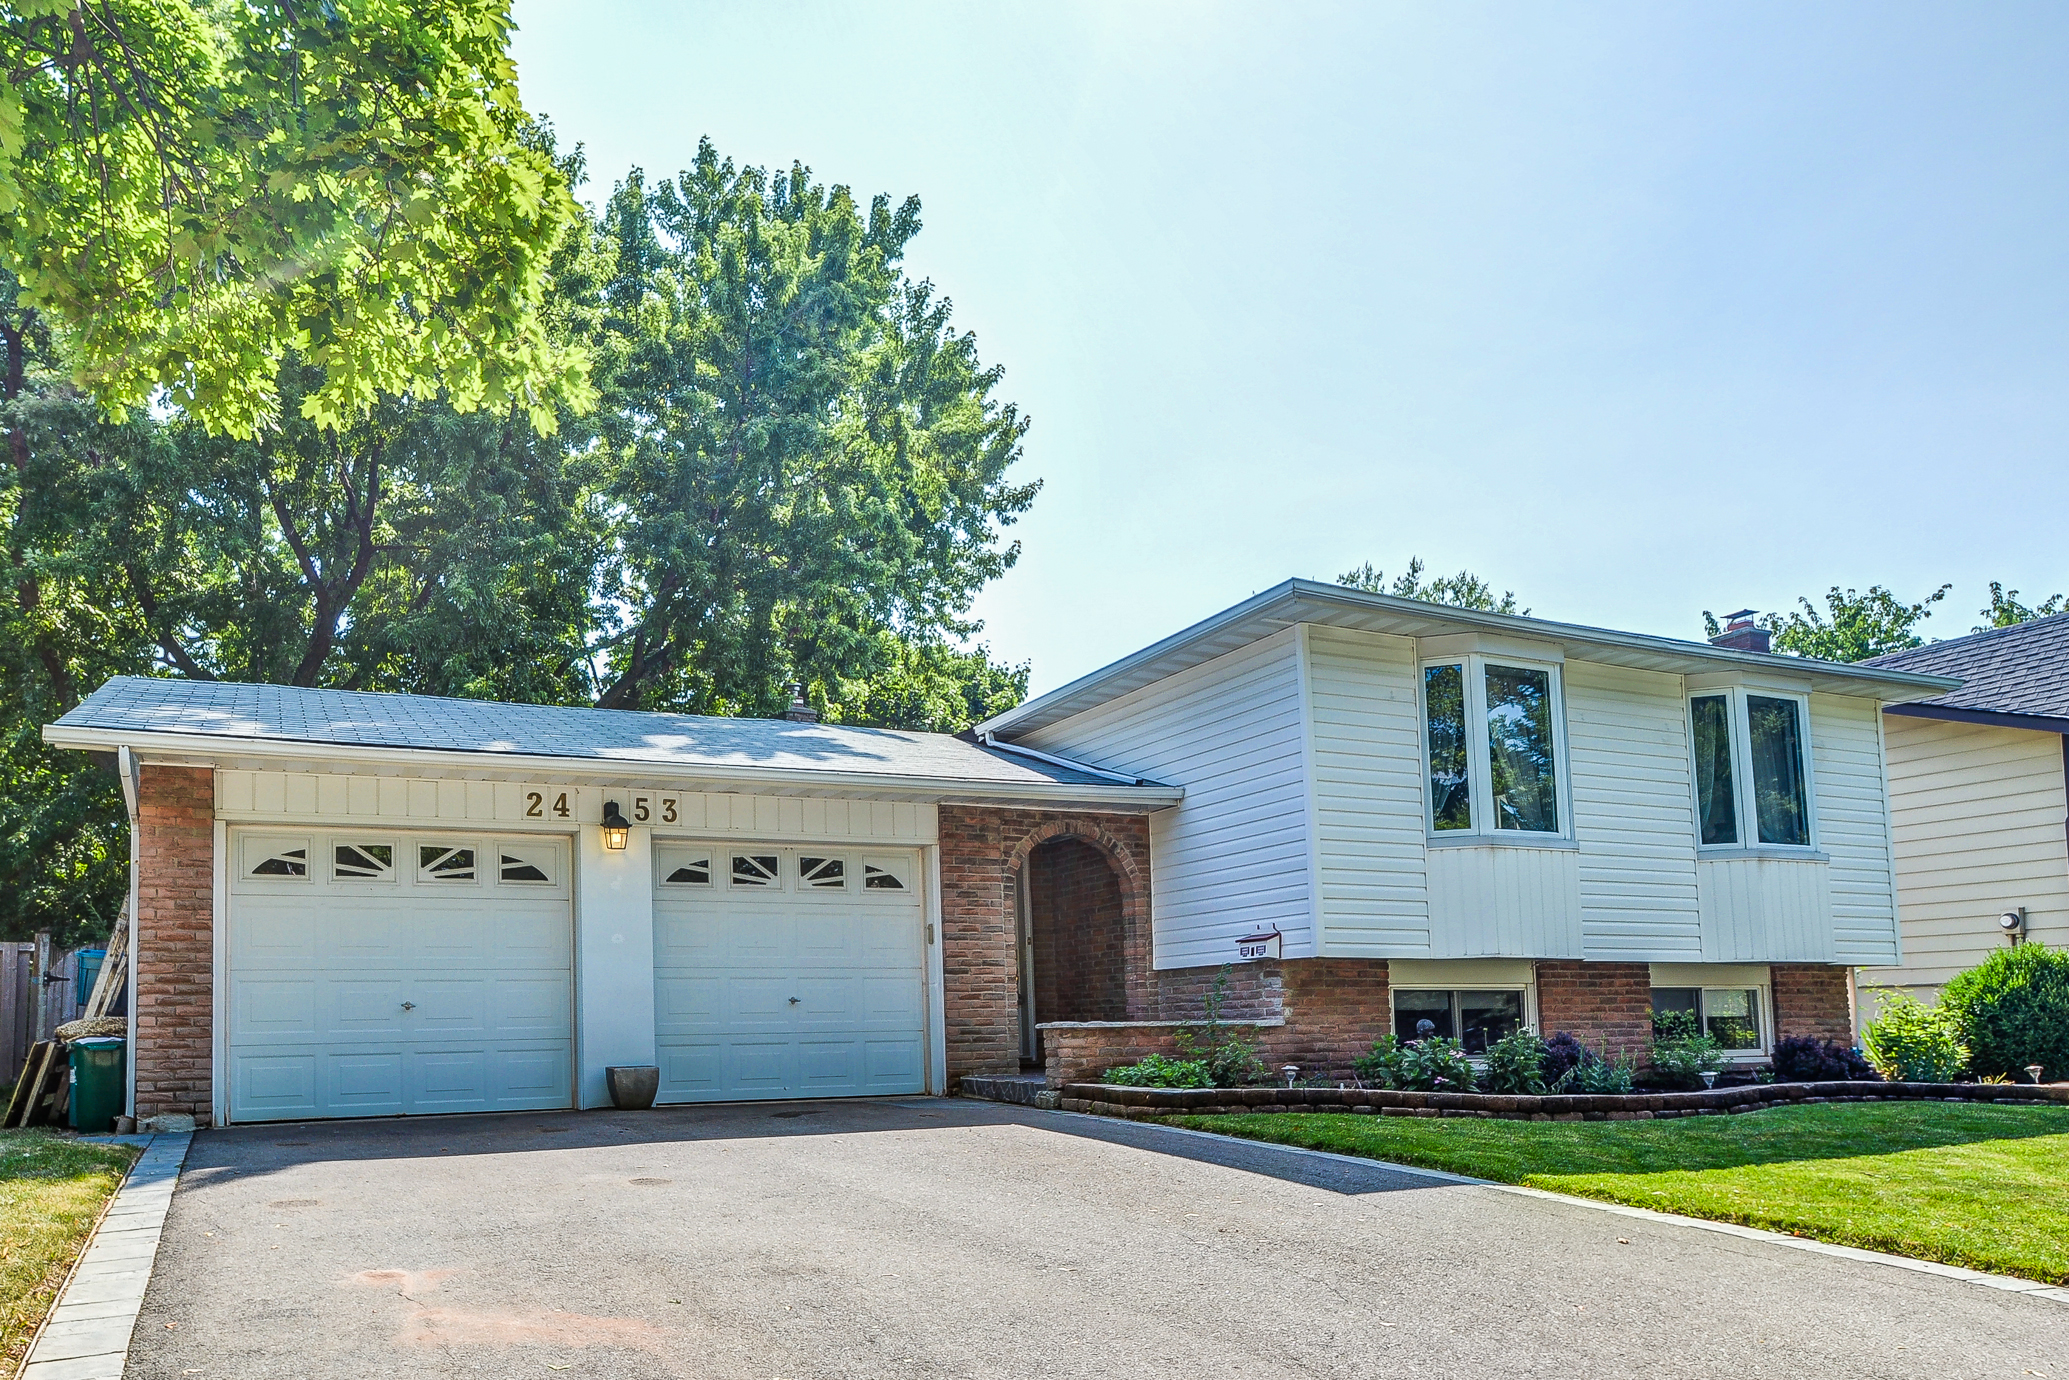 2453 Yarmouth Cres Raised Bungalow The Cardamone Group